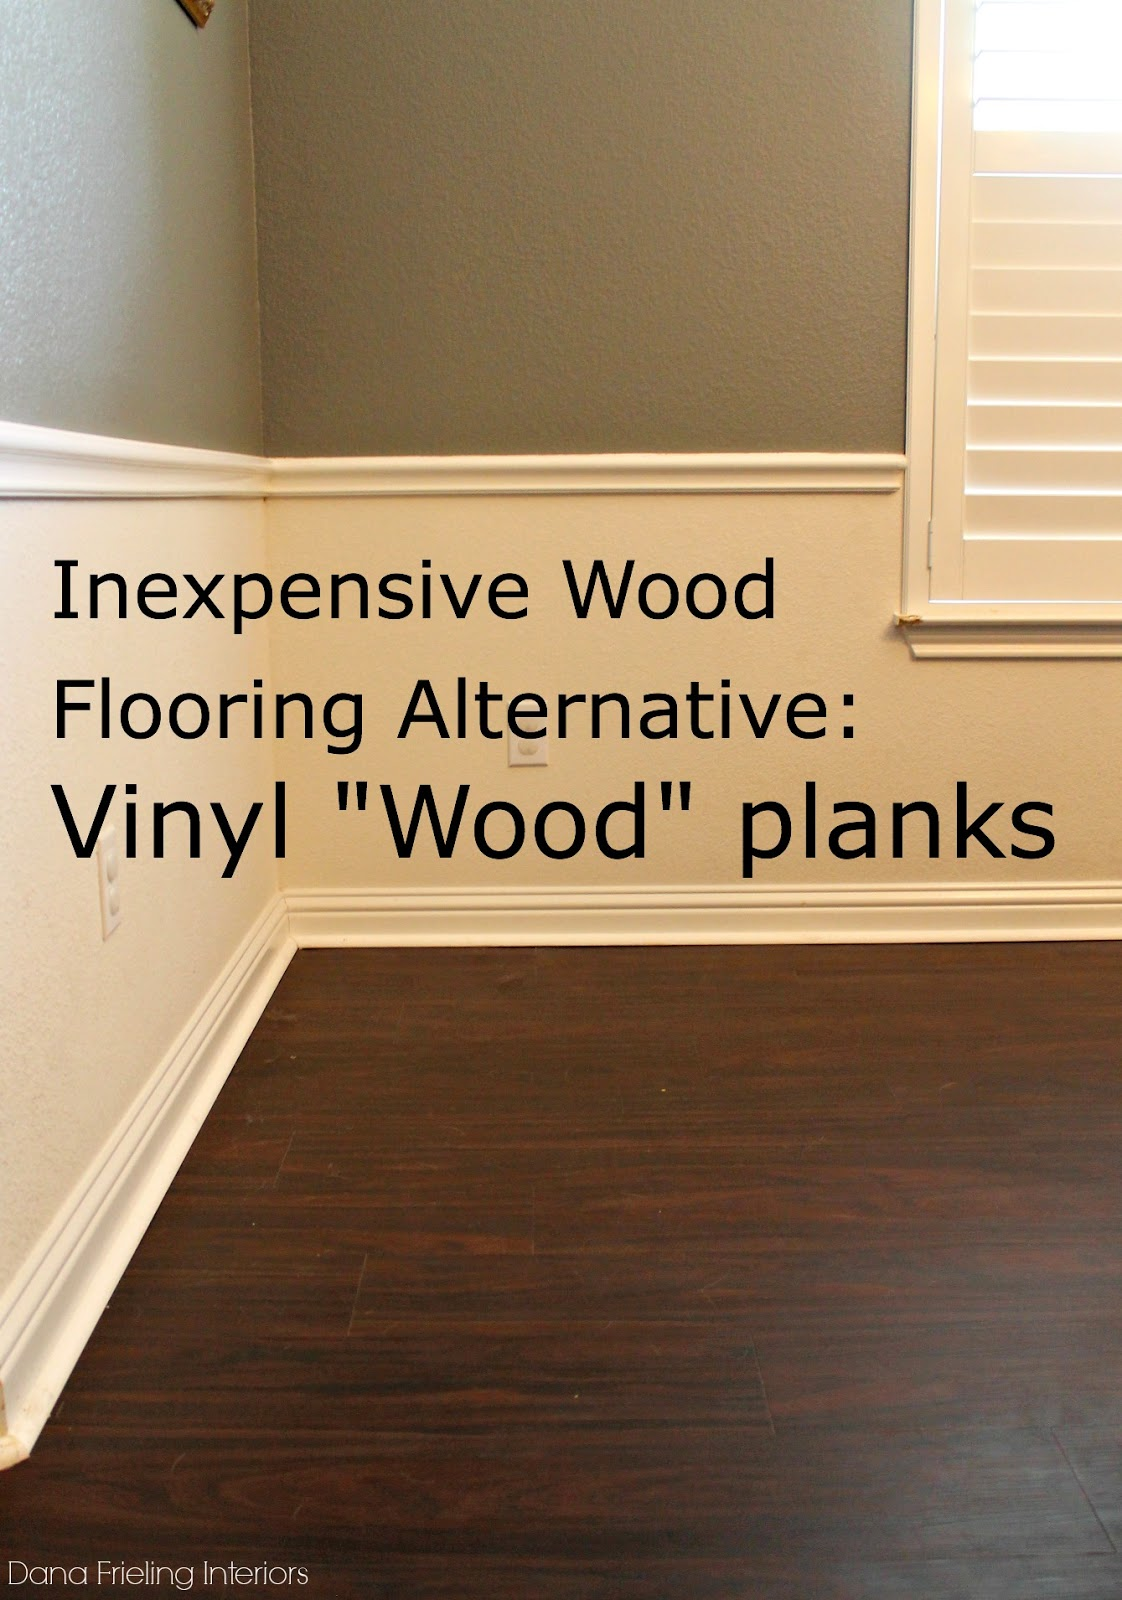 make them wonder inexpensive wood floor alternative